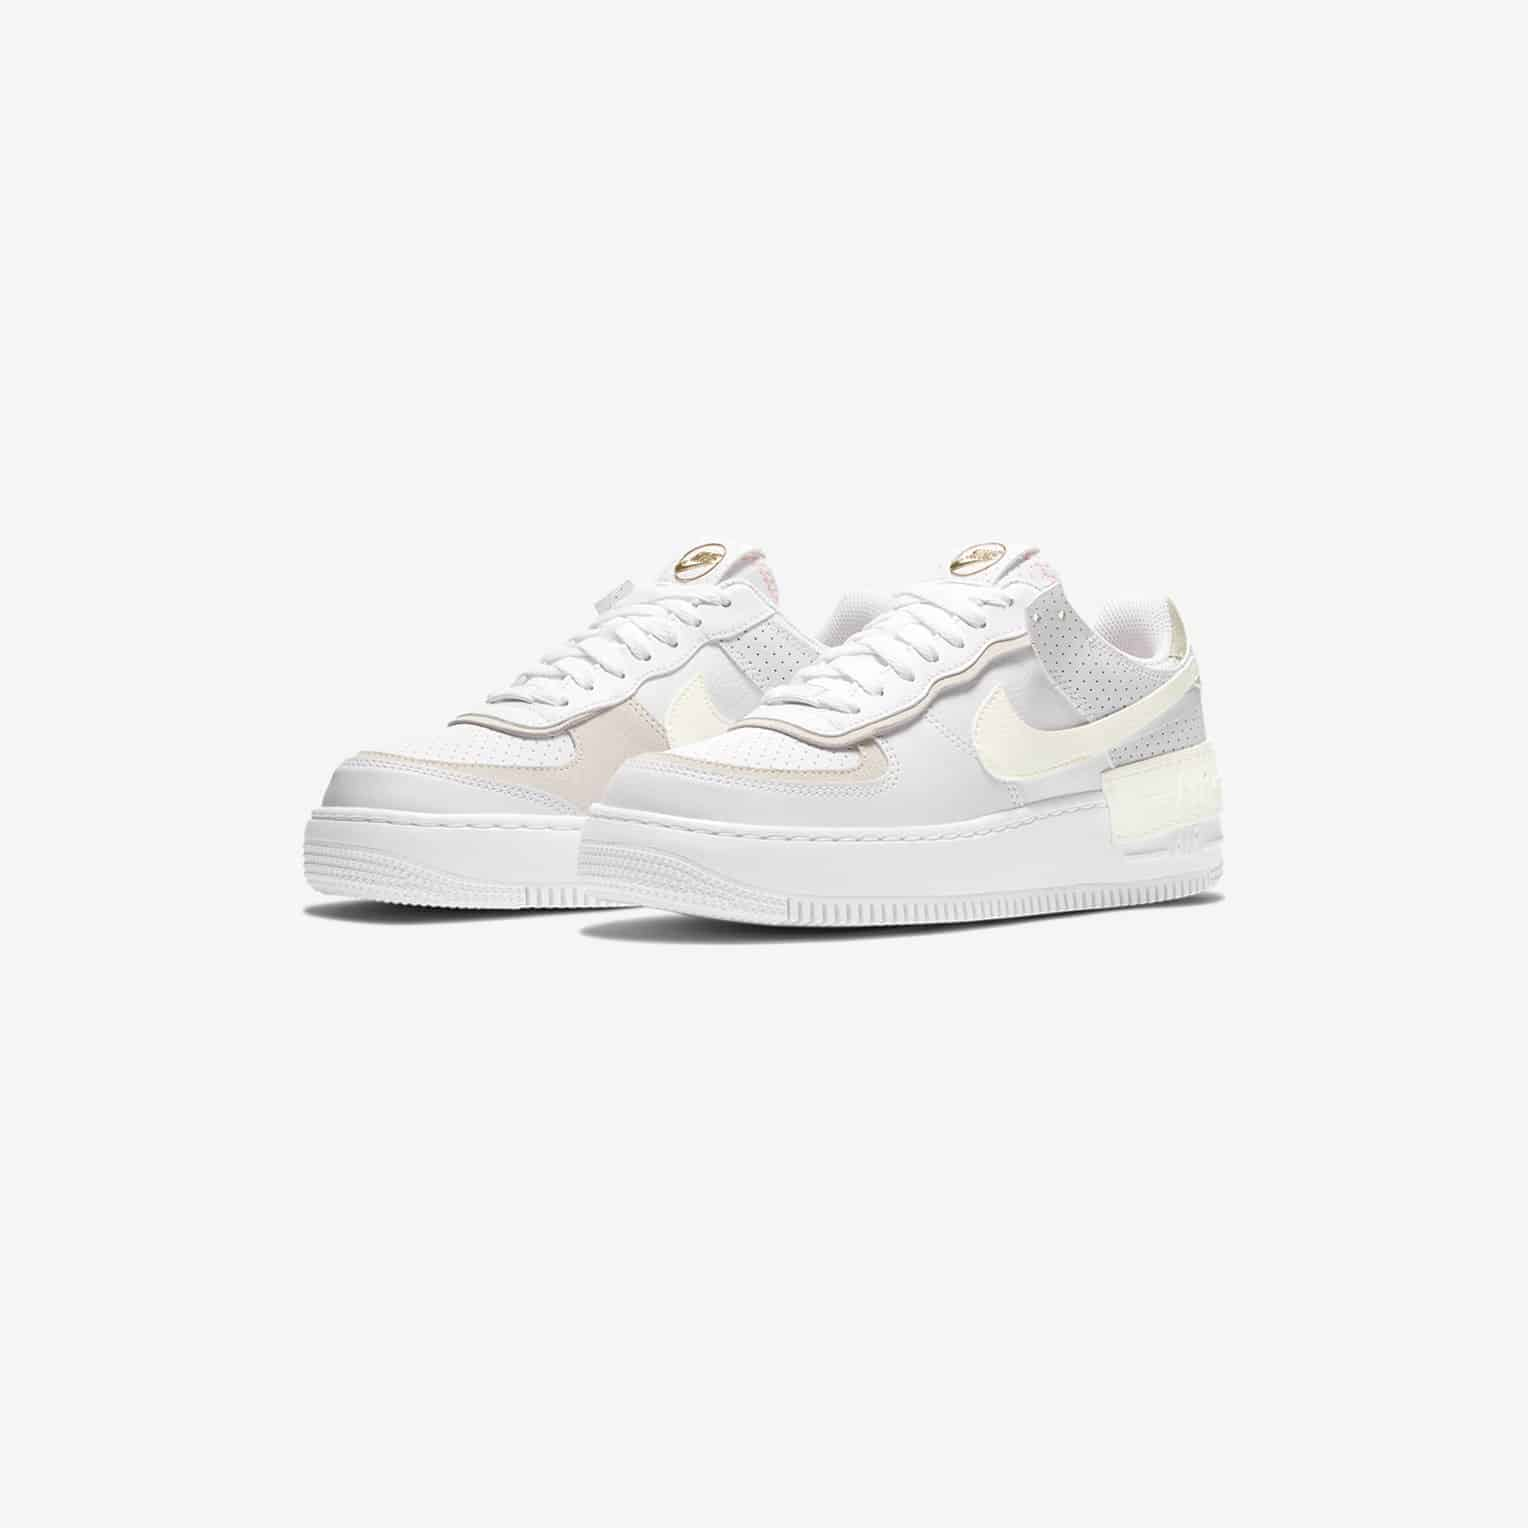 Nike Air Force 1 Shadow White Atomic Pink Neoteric Official Nike dominates the sportswear industry with a fresh, stylish approach to casual apparel. nike air force 1 shadow white atomic